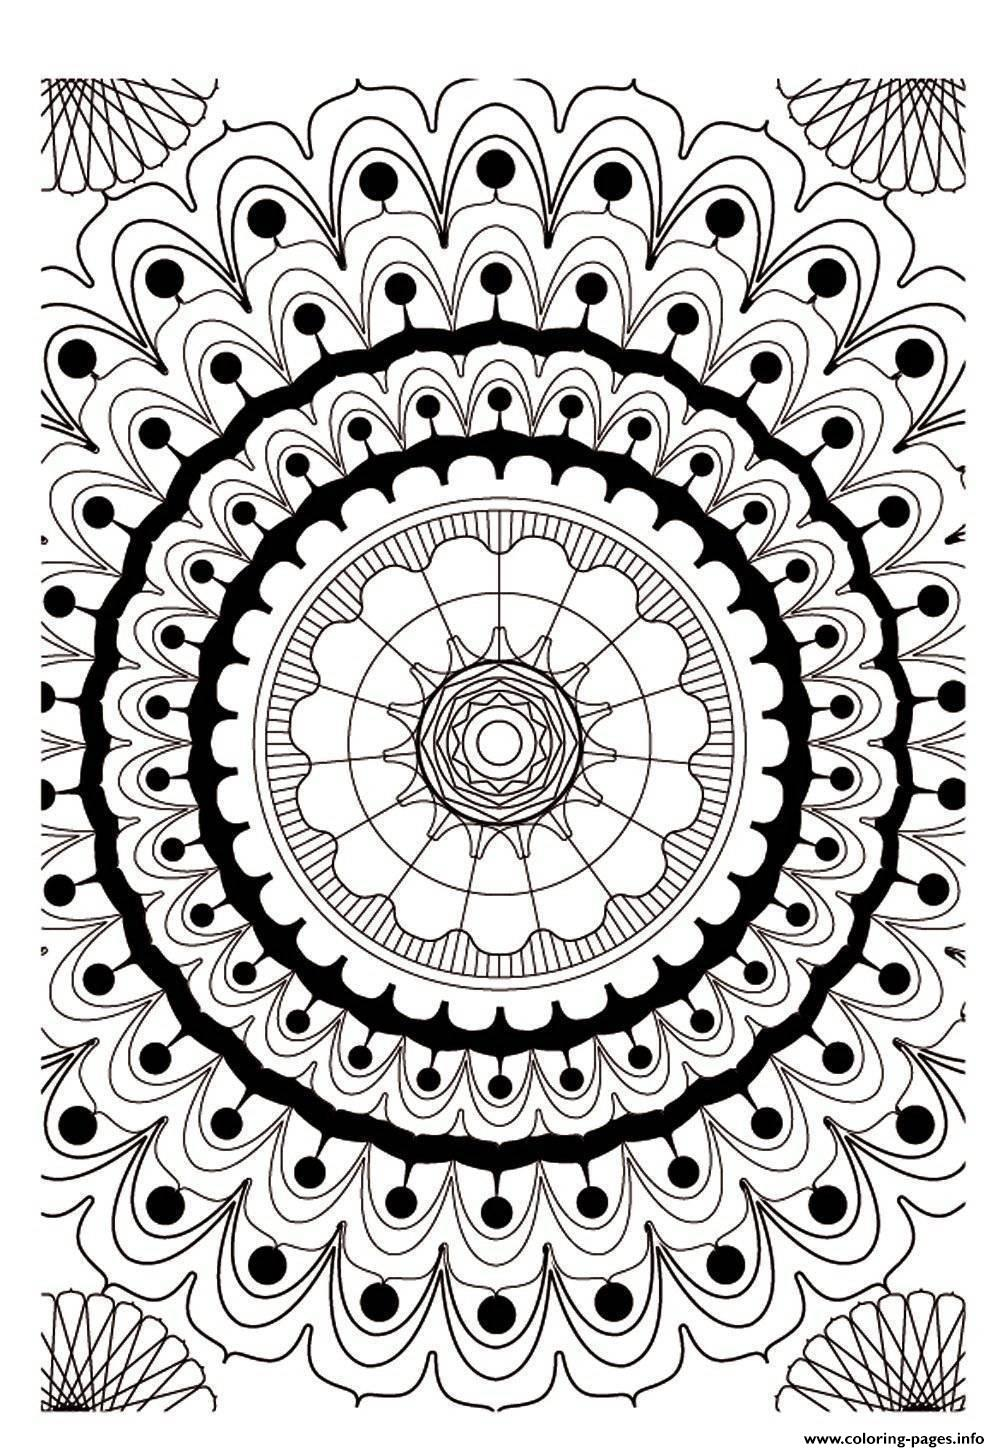 Mandala Adult 2 coloring pages